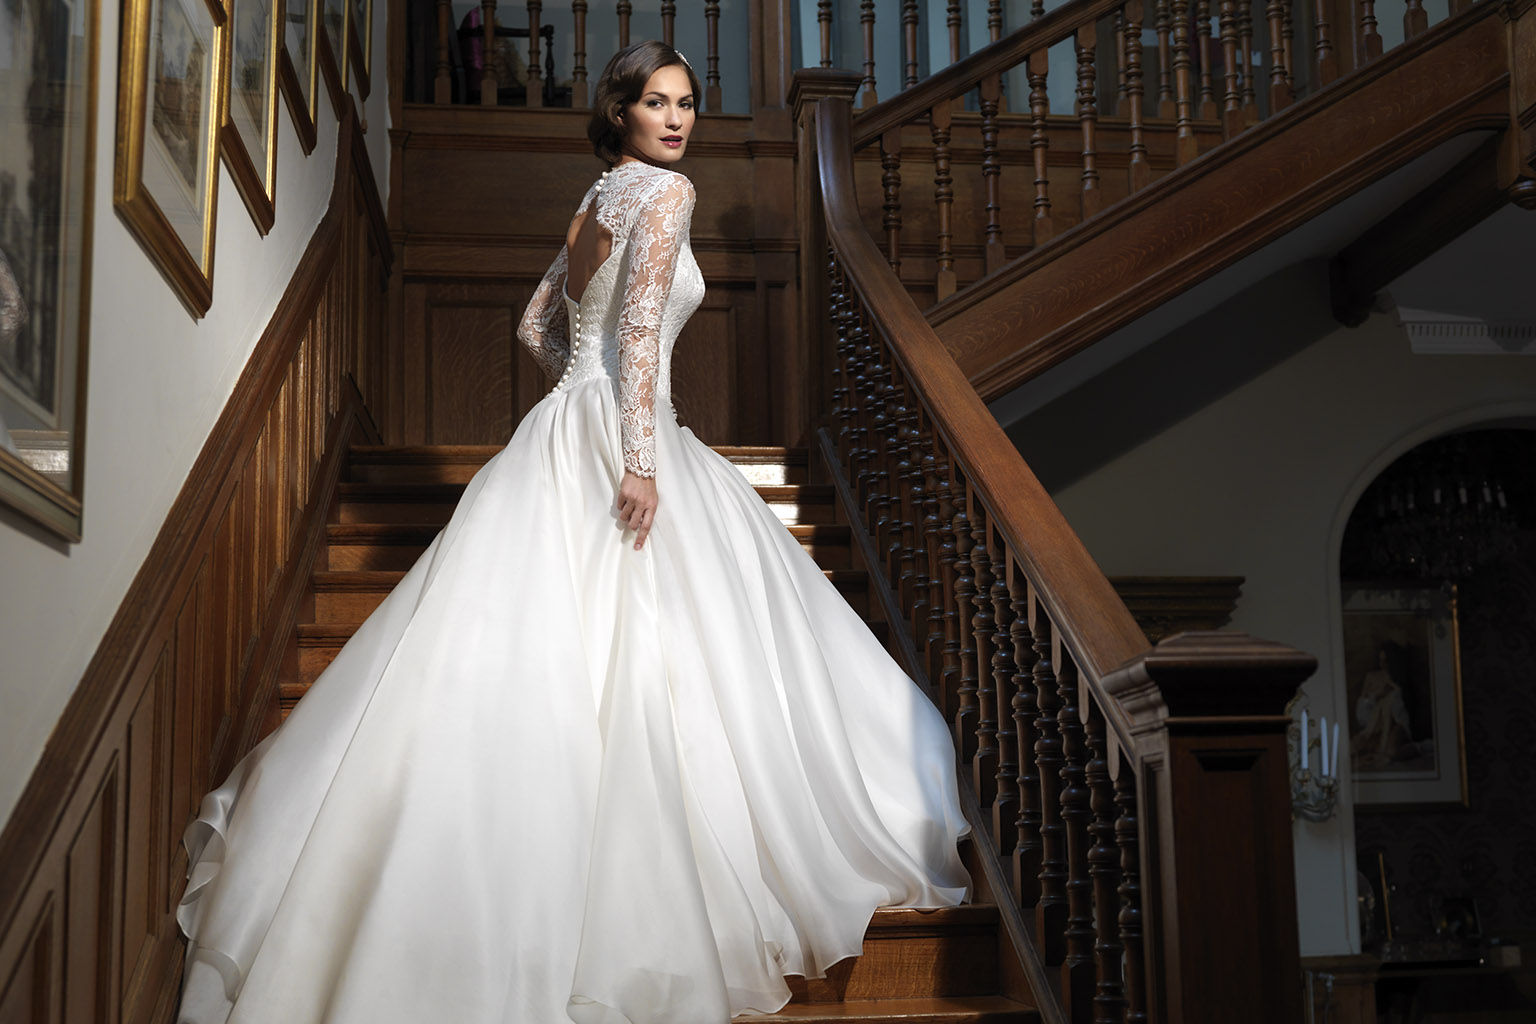 bridalcouture-leading-lady-nostalgia-collection-2012-by-designer-suzanne-neville